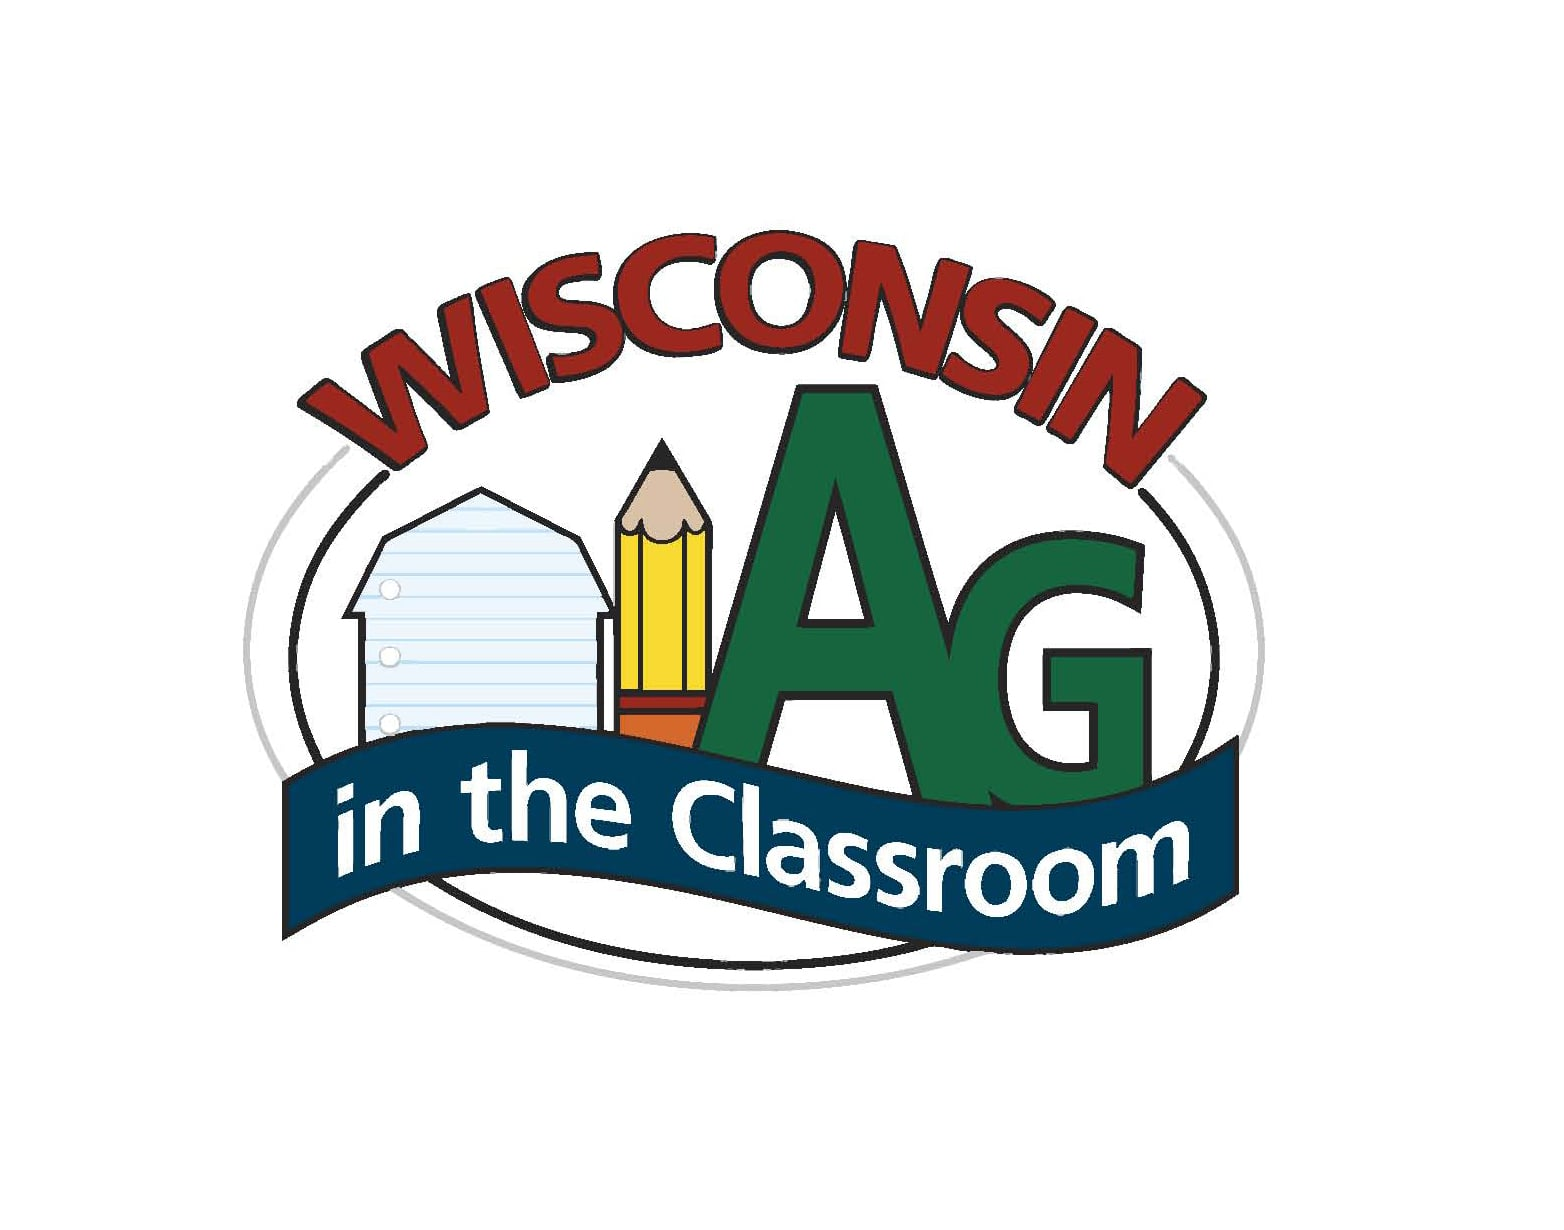 Wisconsin Ag in the Classroom Awards Grants to Fund Ag Literacy ...